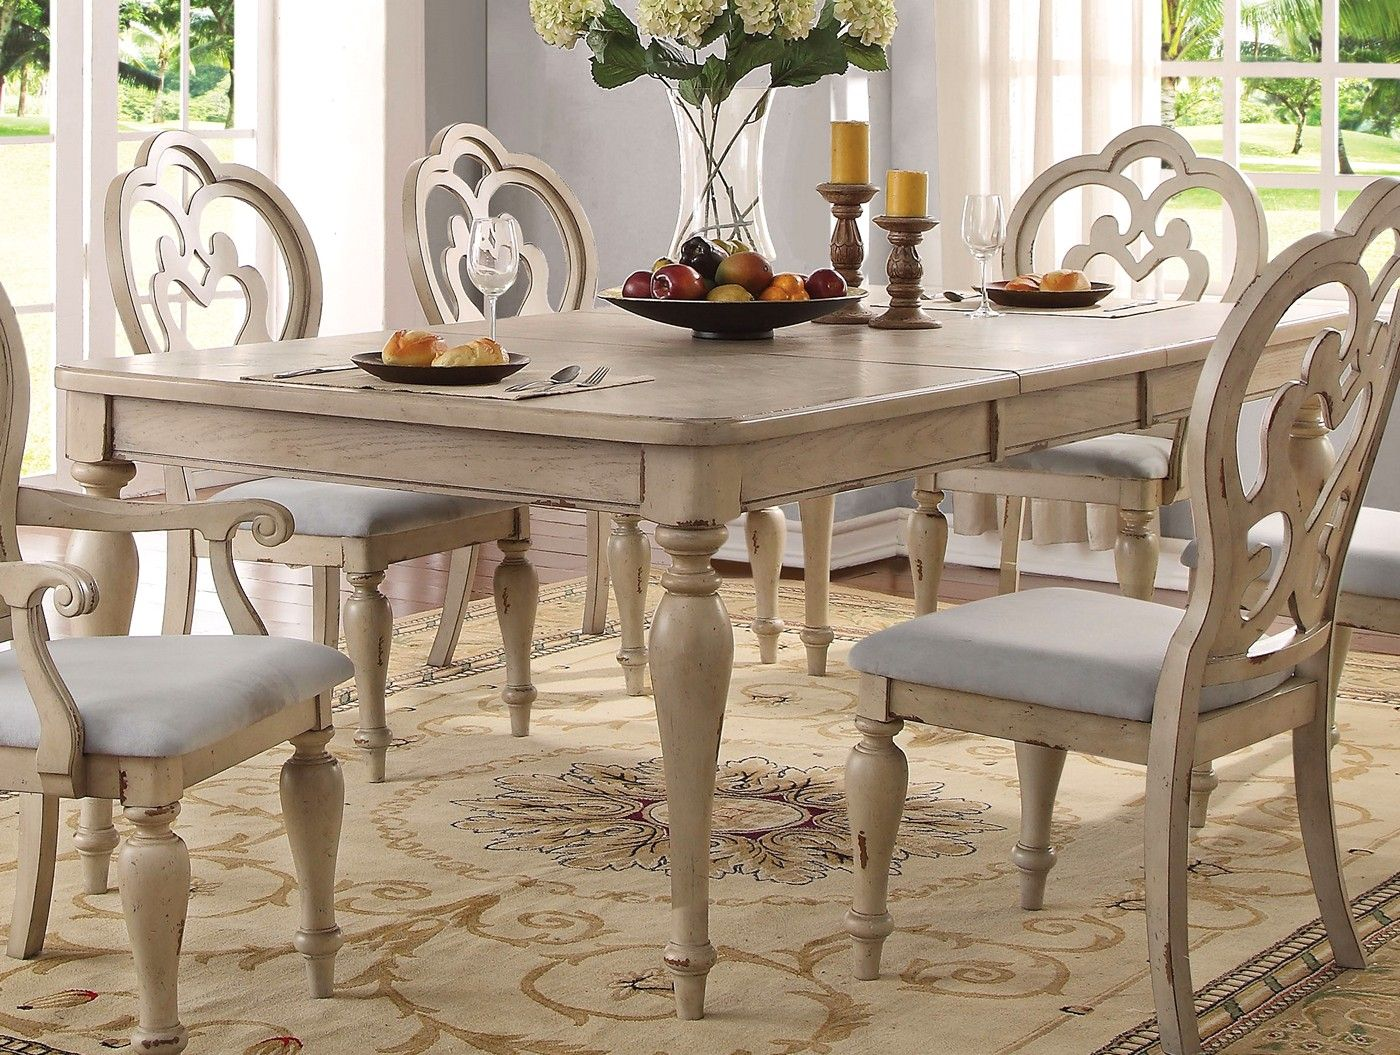 Absolon French Country 66 86 Dining Table In Antique White Finish